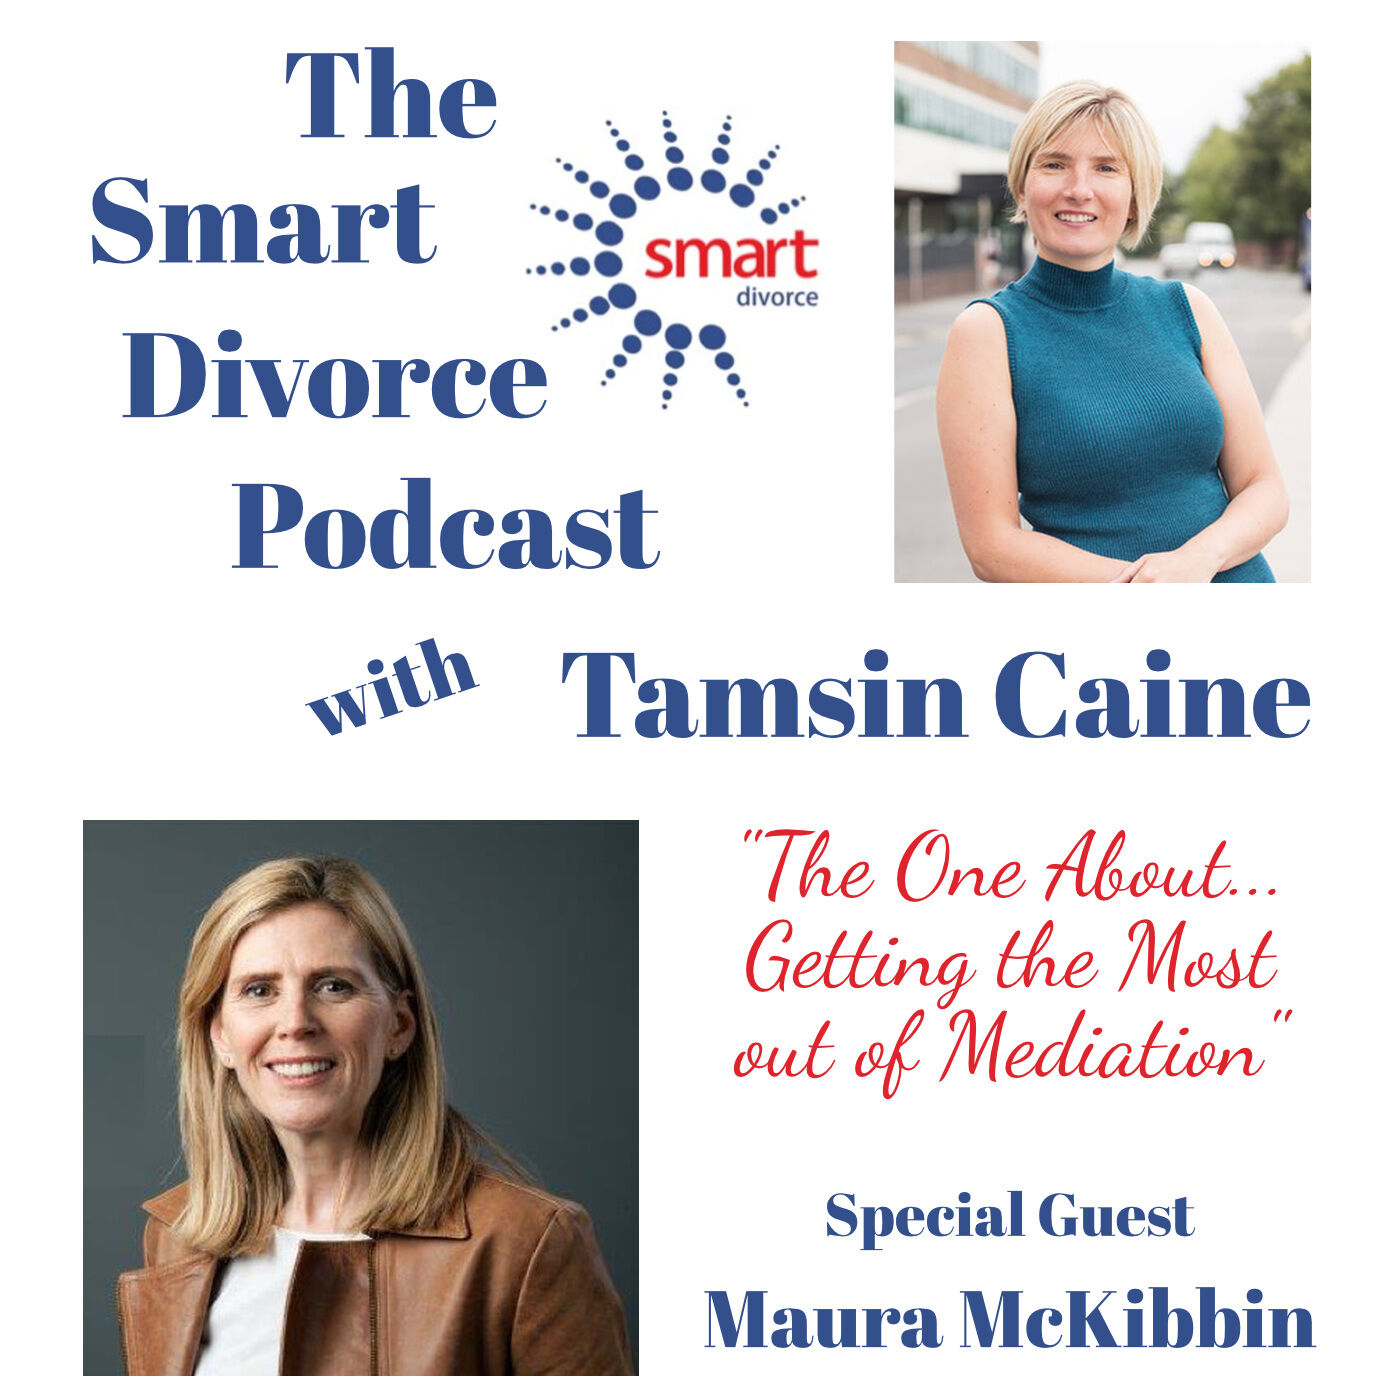 The Smart Divorce Podcast - The one about... Getting the Most out of Mediation